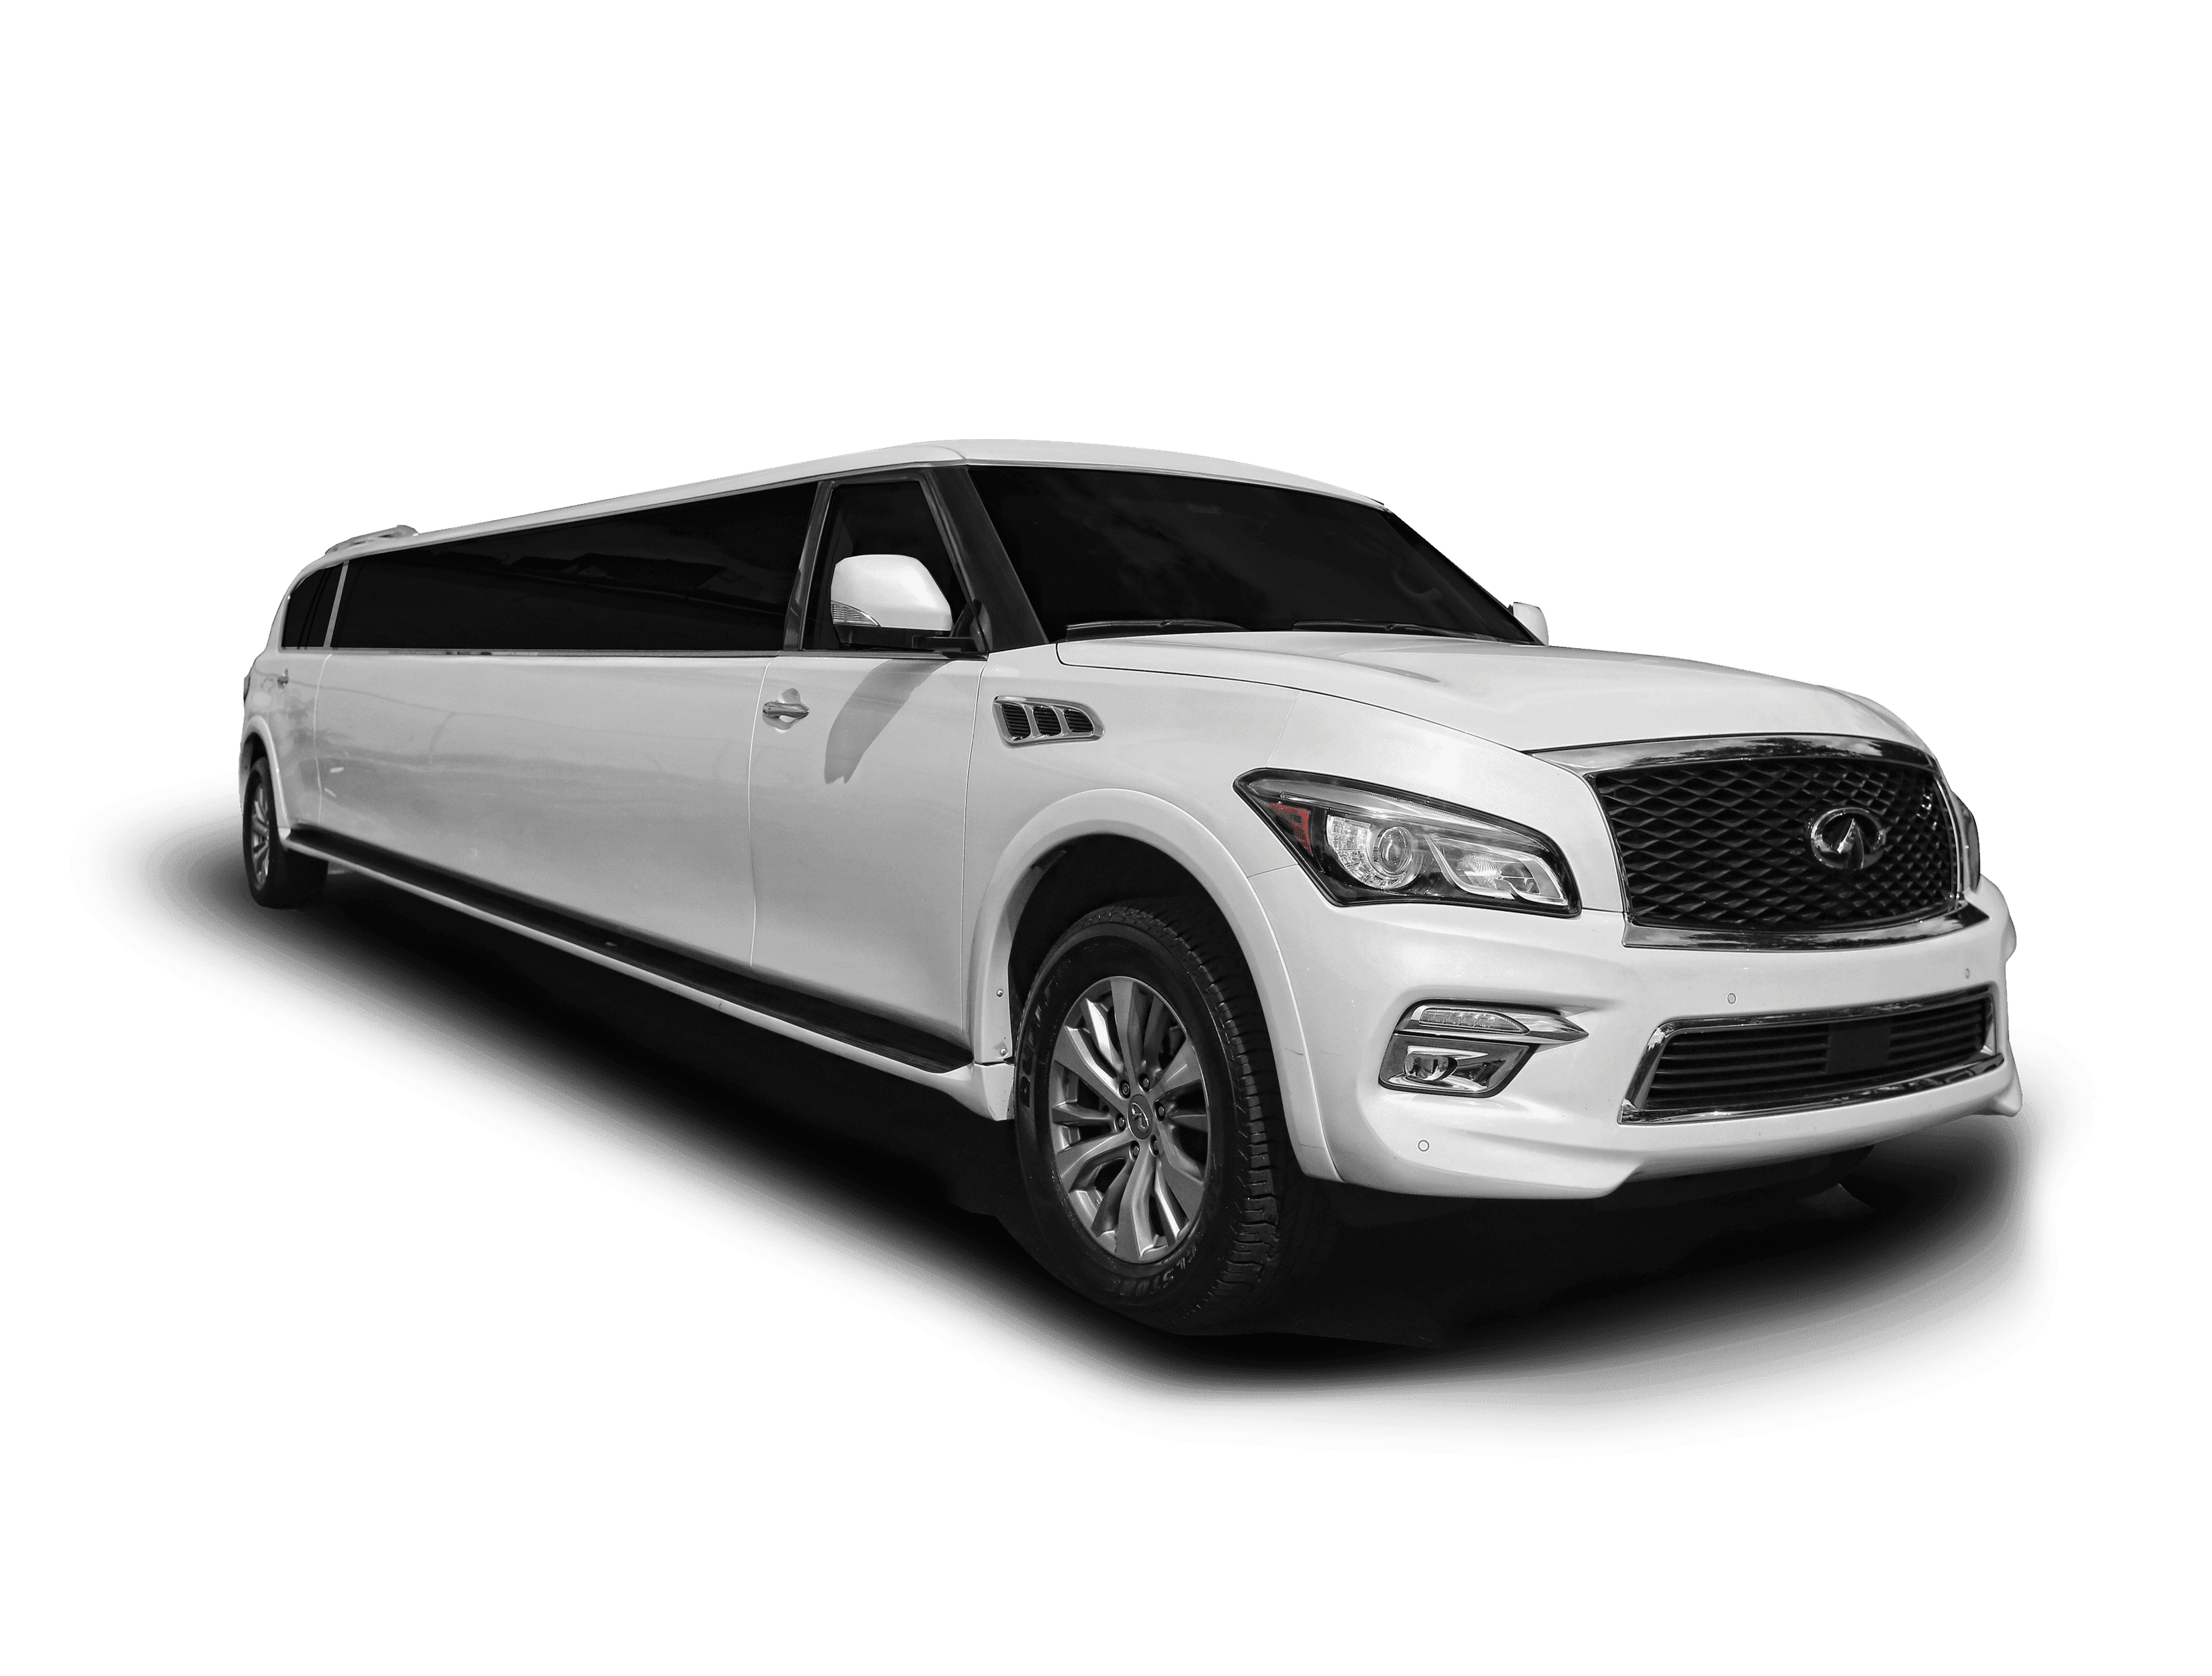 Infiniti QX 80 limousine for bachelorette party limo in NJ, NY and PA.